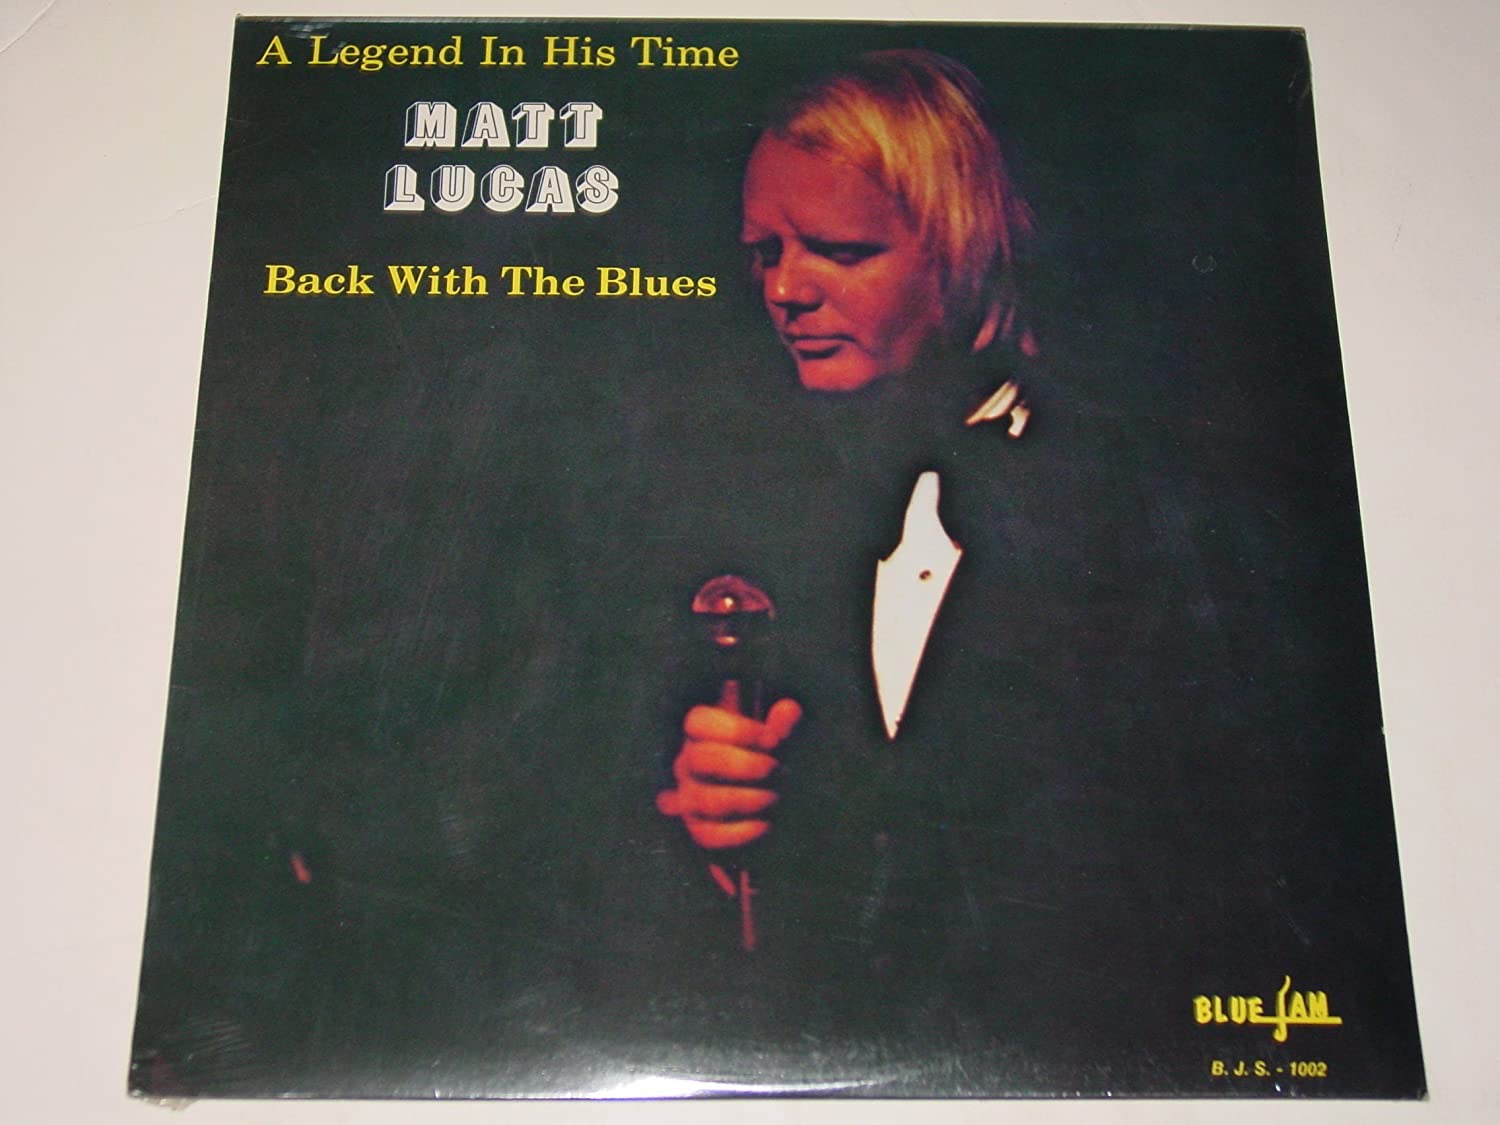 MATT LUCAS_A Legend In His Time: Back With The Blues